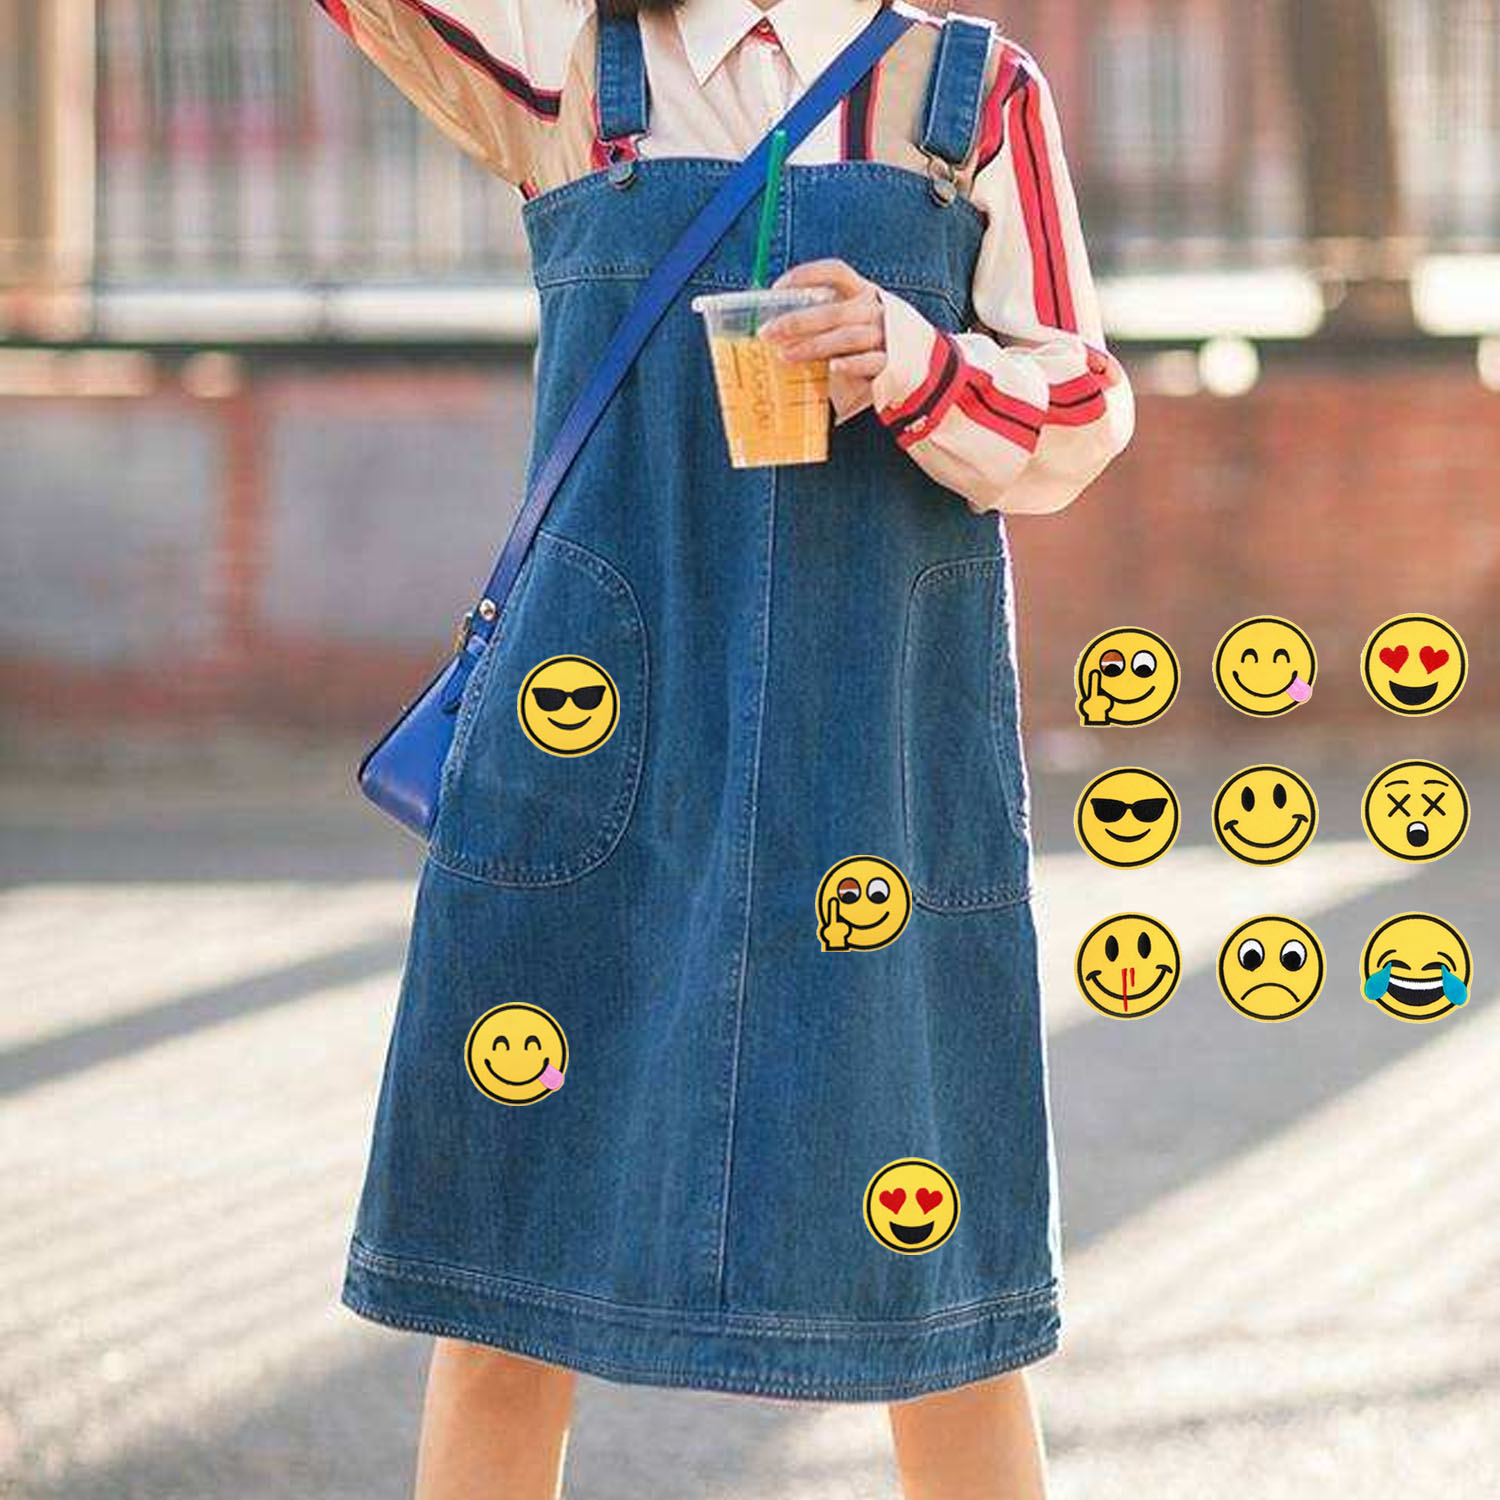 9PCS Cute Smile Face Expression Embroidery DIY Clothes Patches Fabric Applique Garment Decoration for T-shirt Jeans Clothing Bag